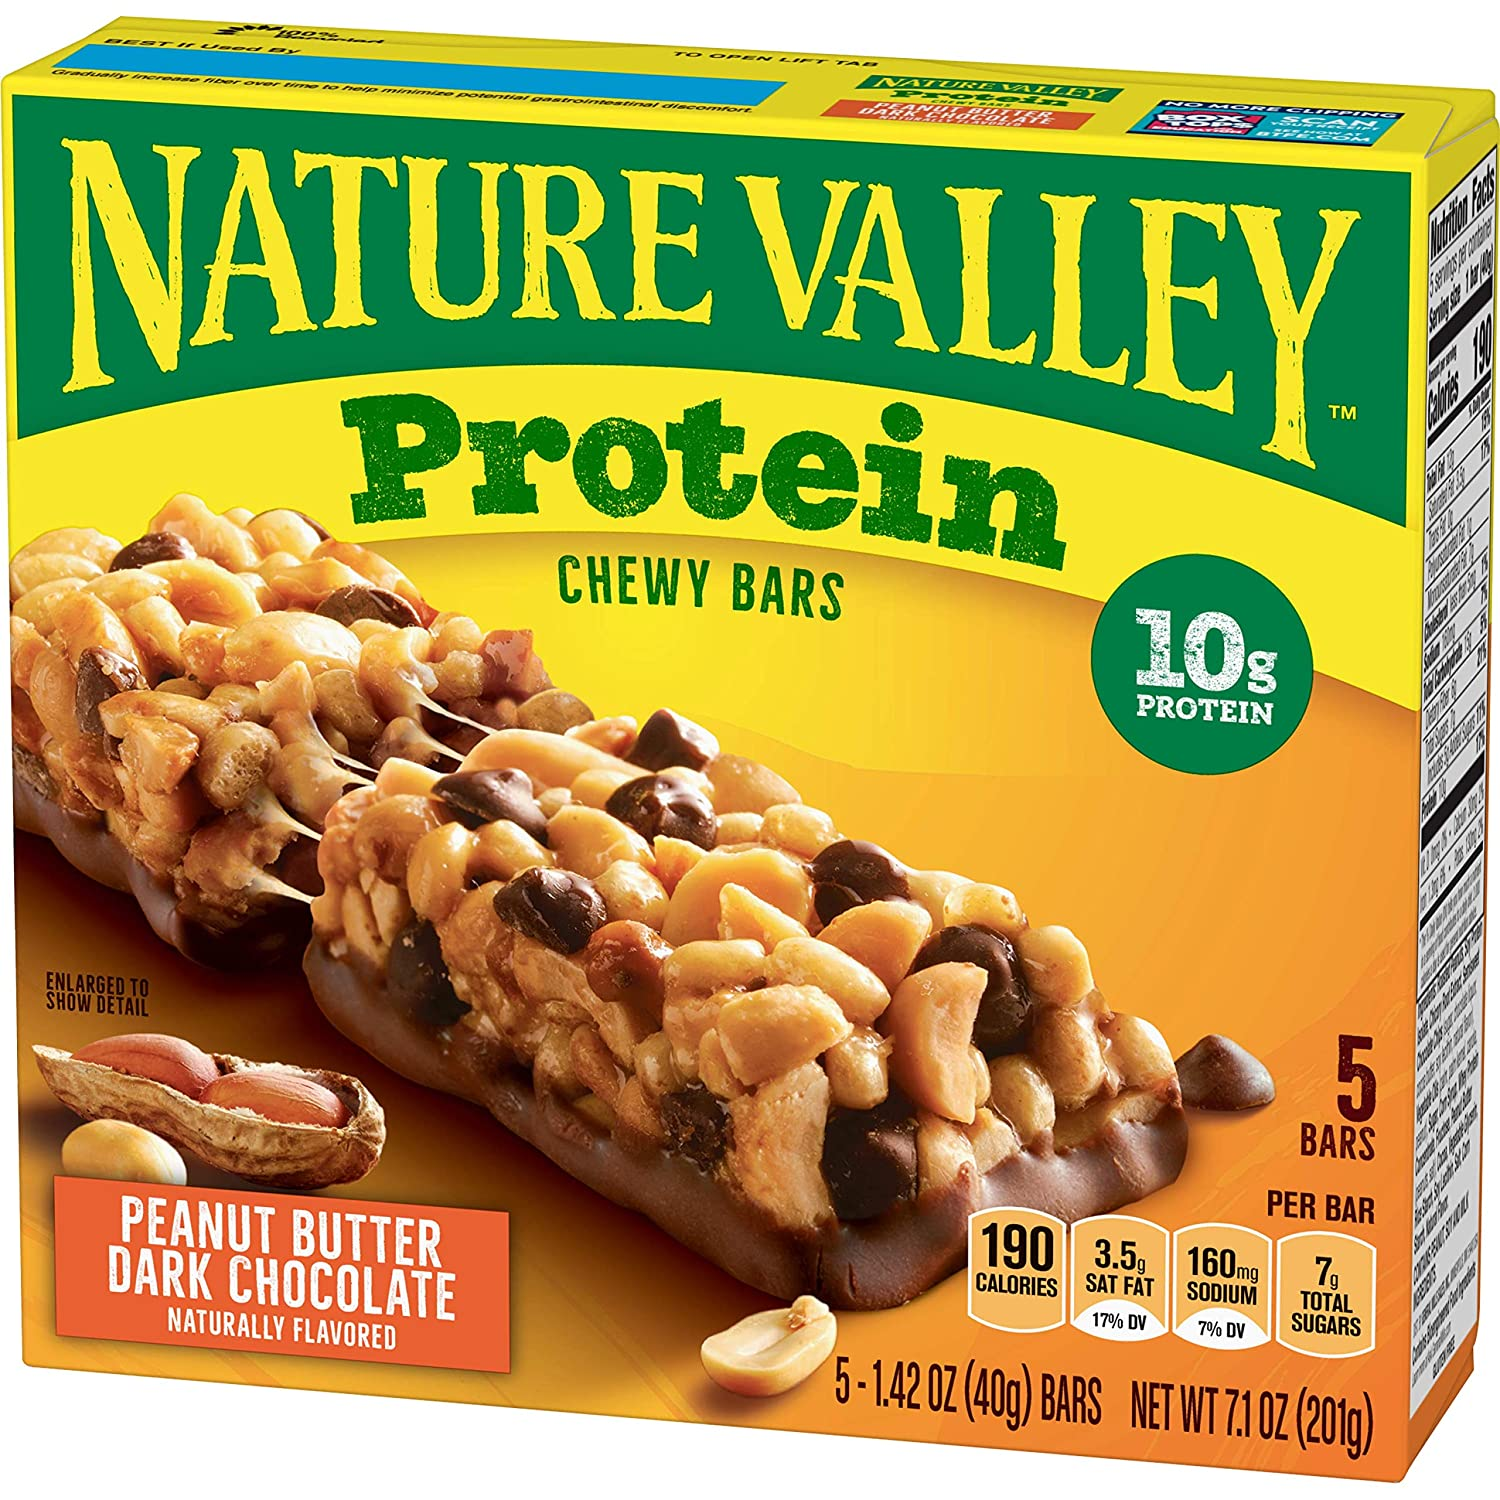 Nature Valley, Protein Chewy Bars, Peanut Butter Dark Chocolate, 5 Ct